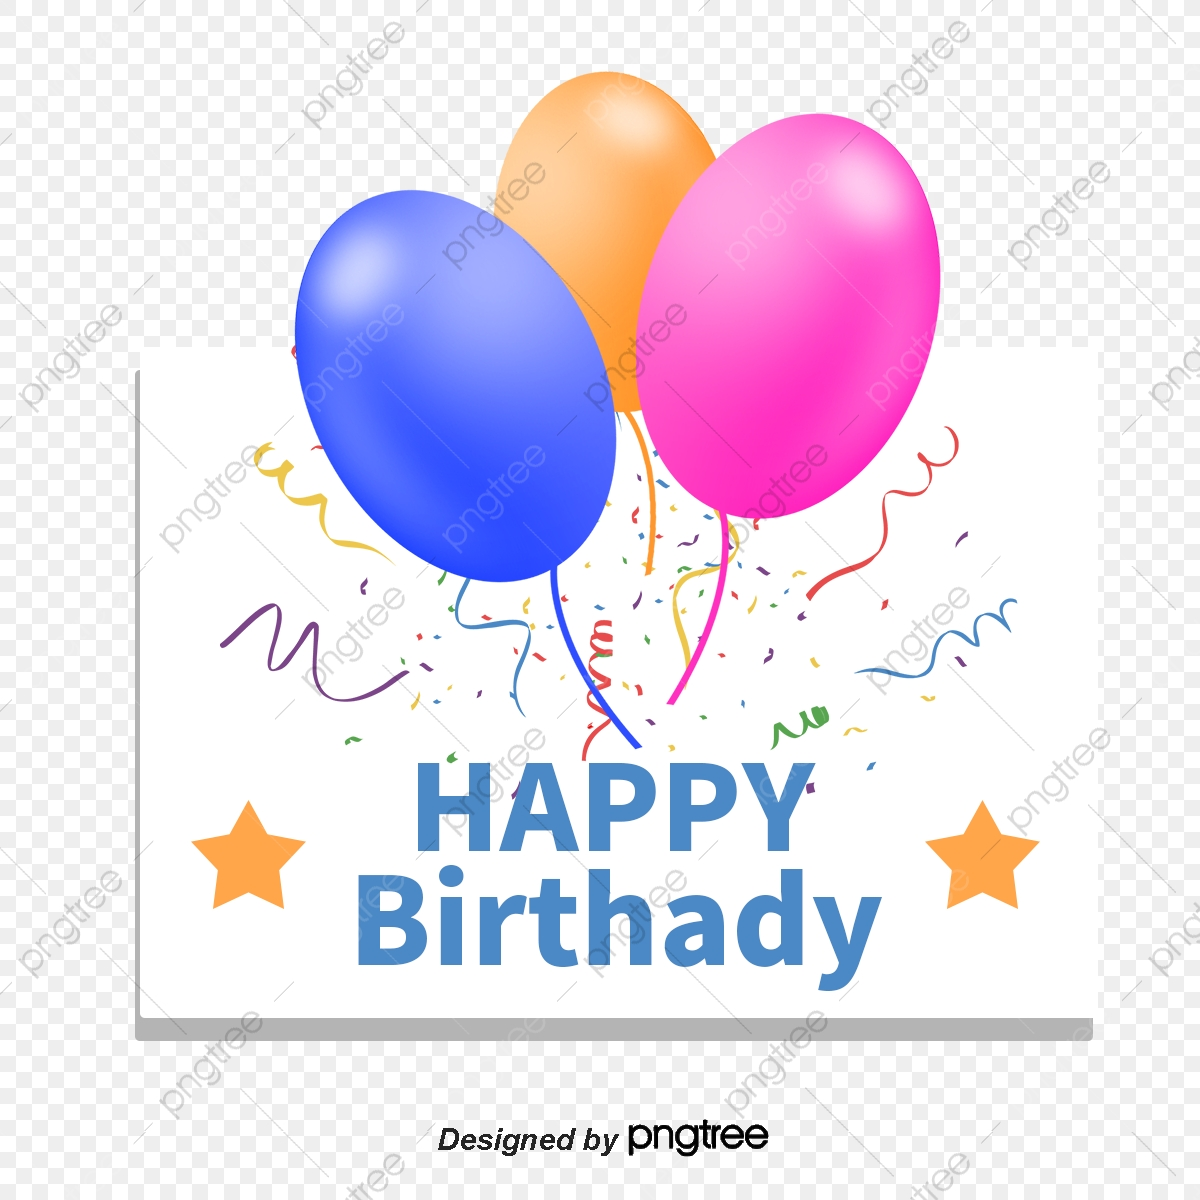 Vector Happy Birthday Balloons Birthday Balloons Clipart Colored Balloons Flat Balloons Png Transparent Clipart Image And Psd File For Free Download